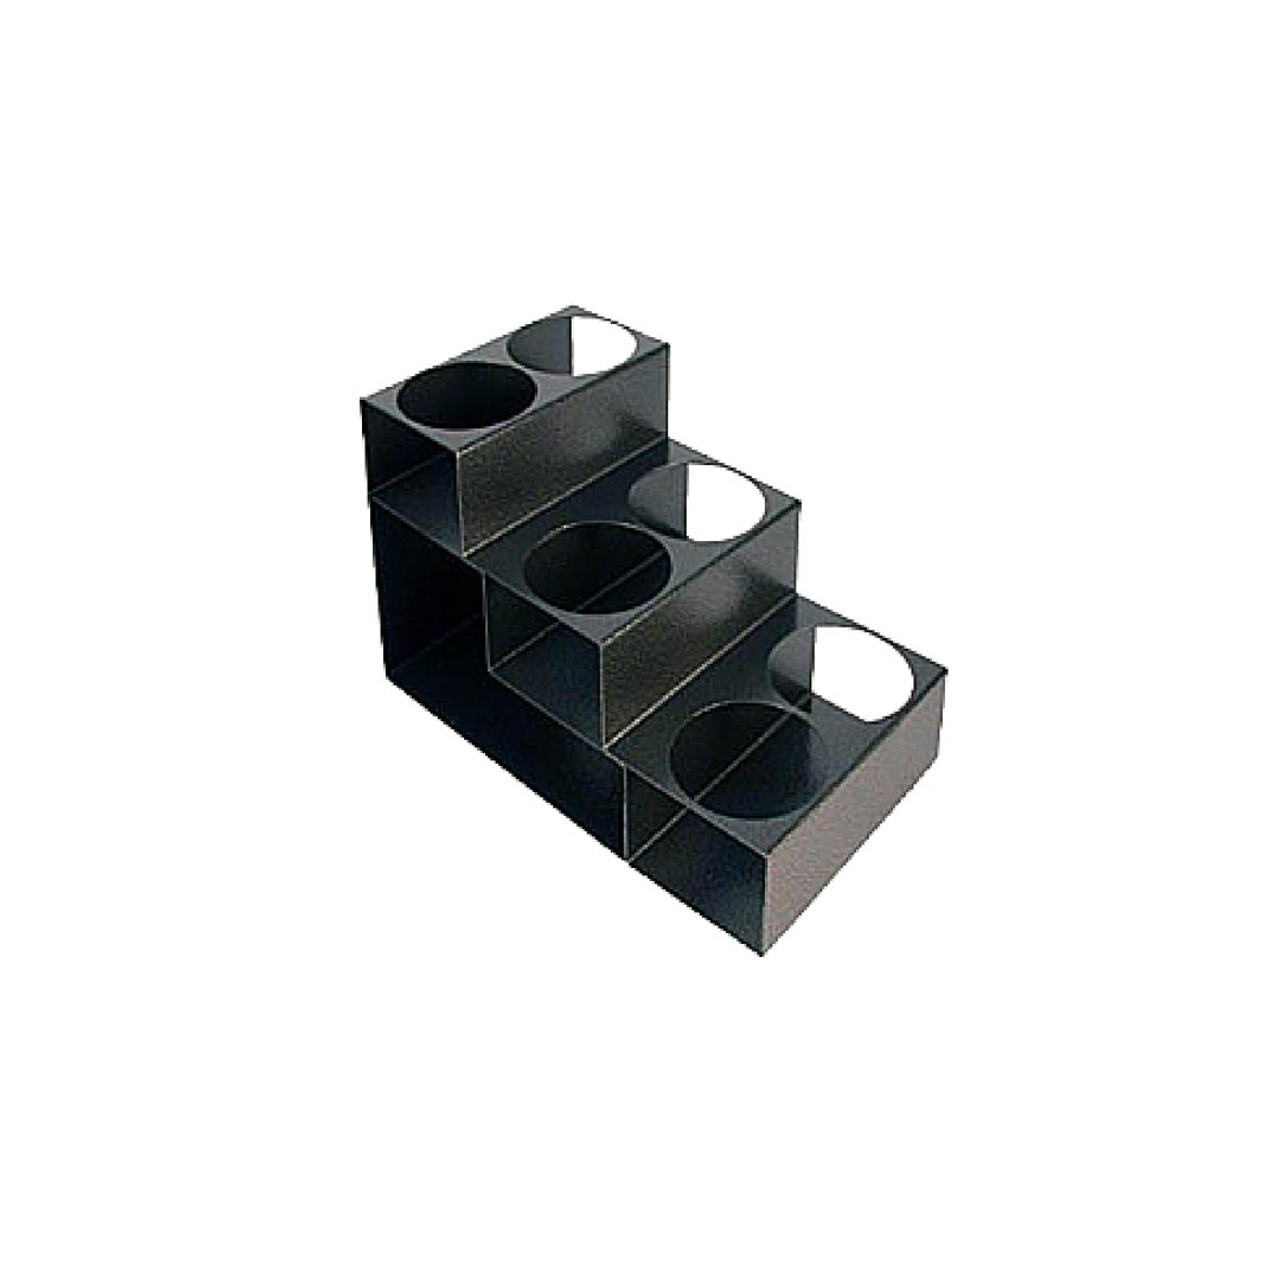 Metal Syrup Rack: 3 Tier - 6 Holes